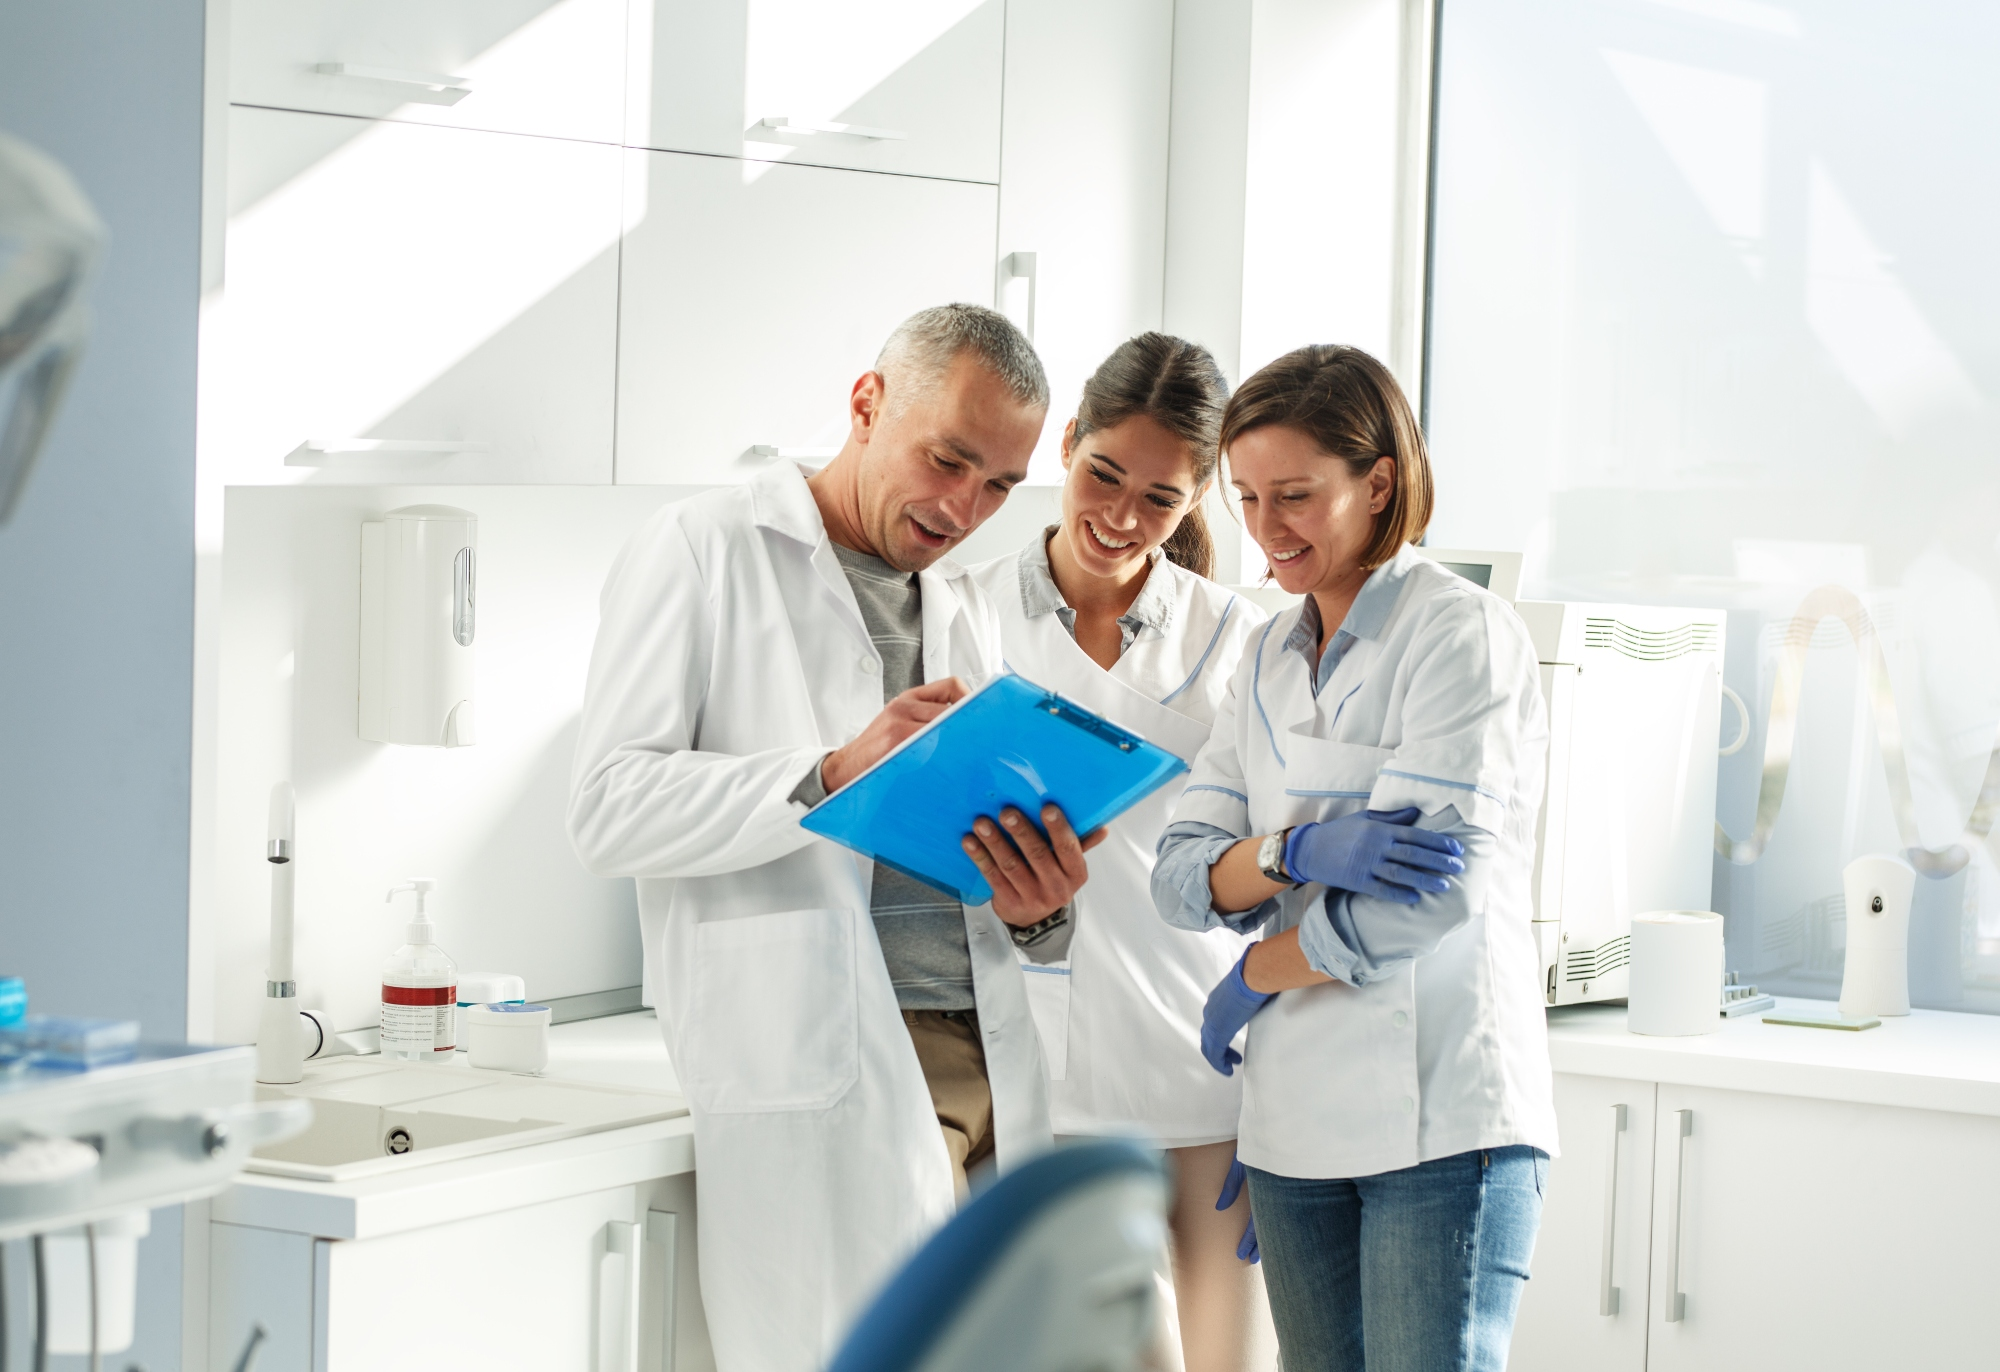 How to help improve efficieny in dentist office